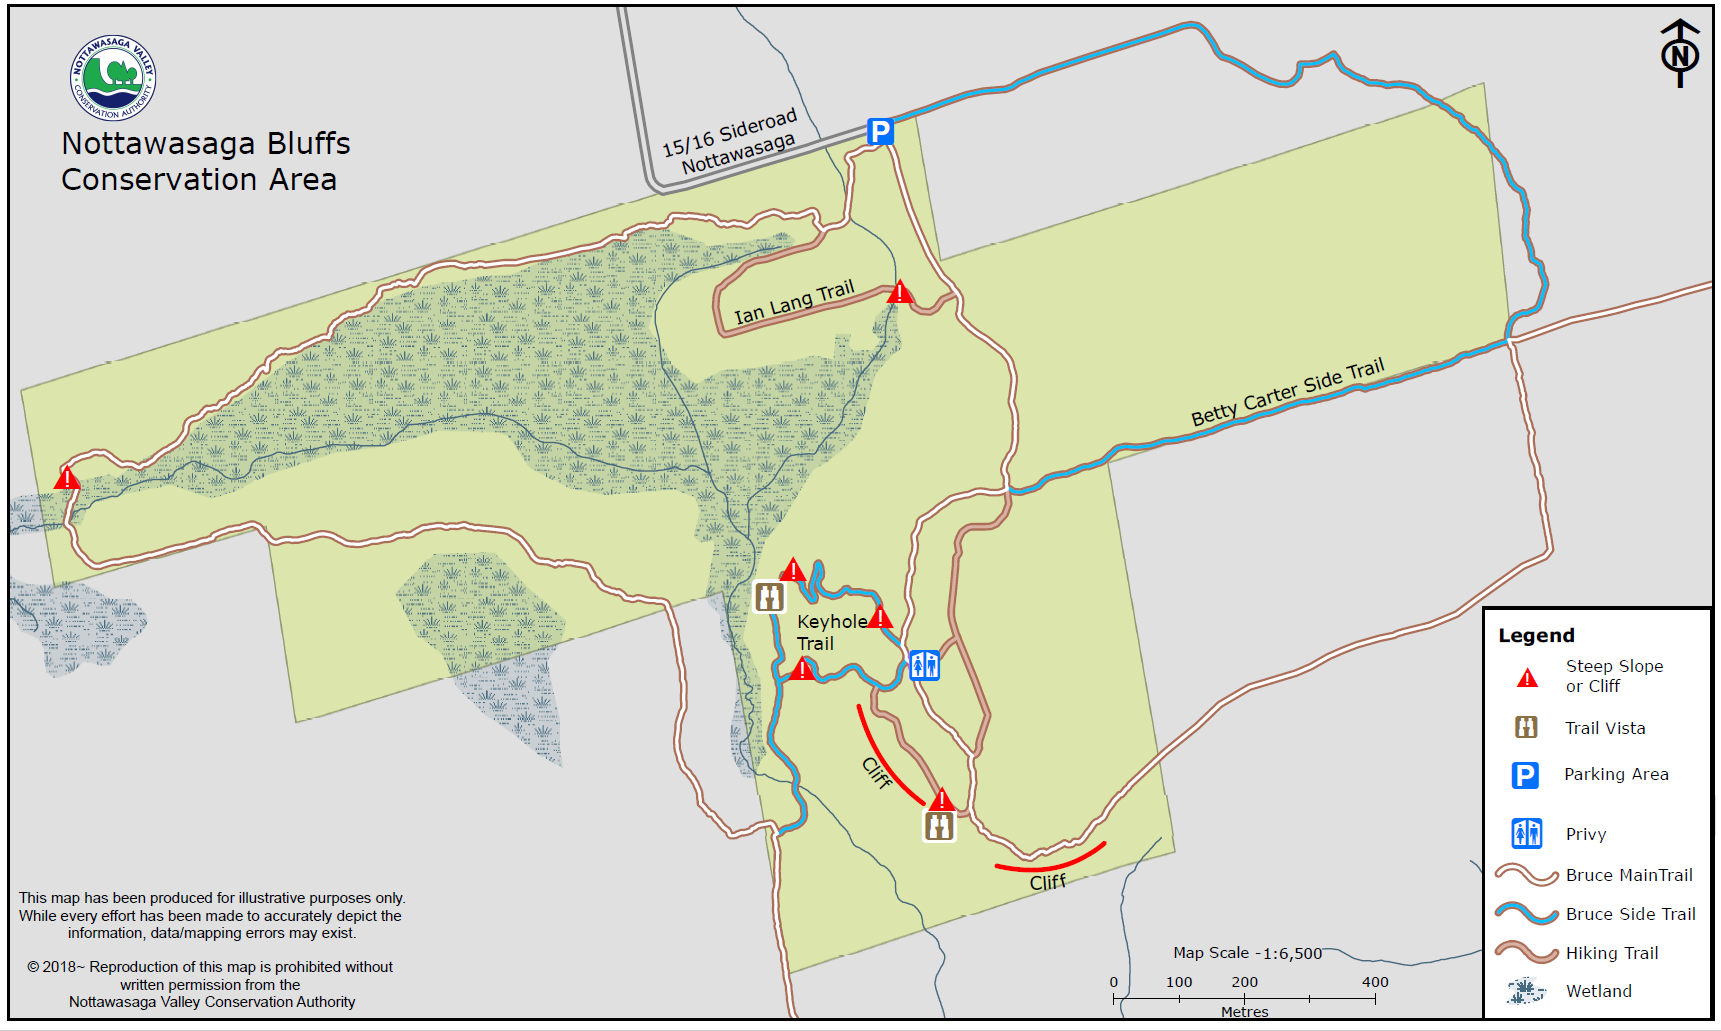 Nottawasaga_Bluffs_Trail_Map_web.jpg